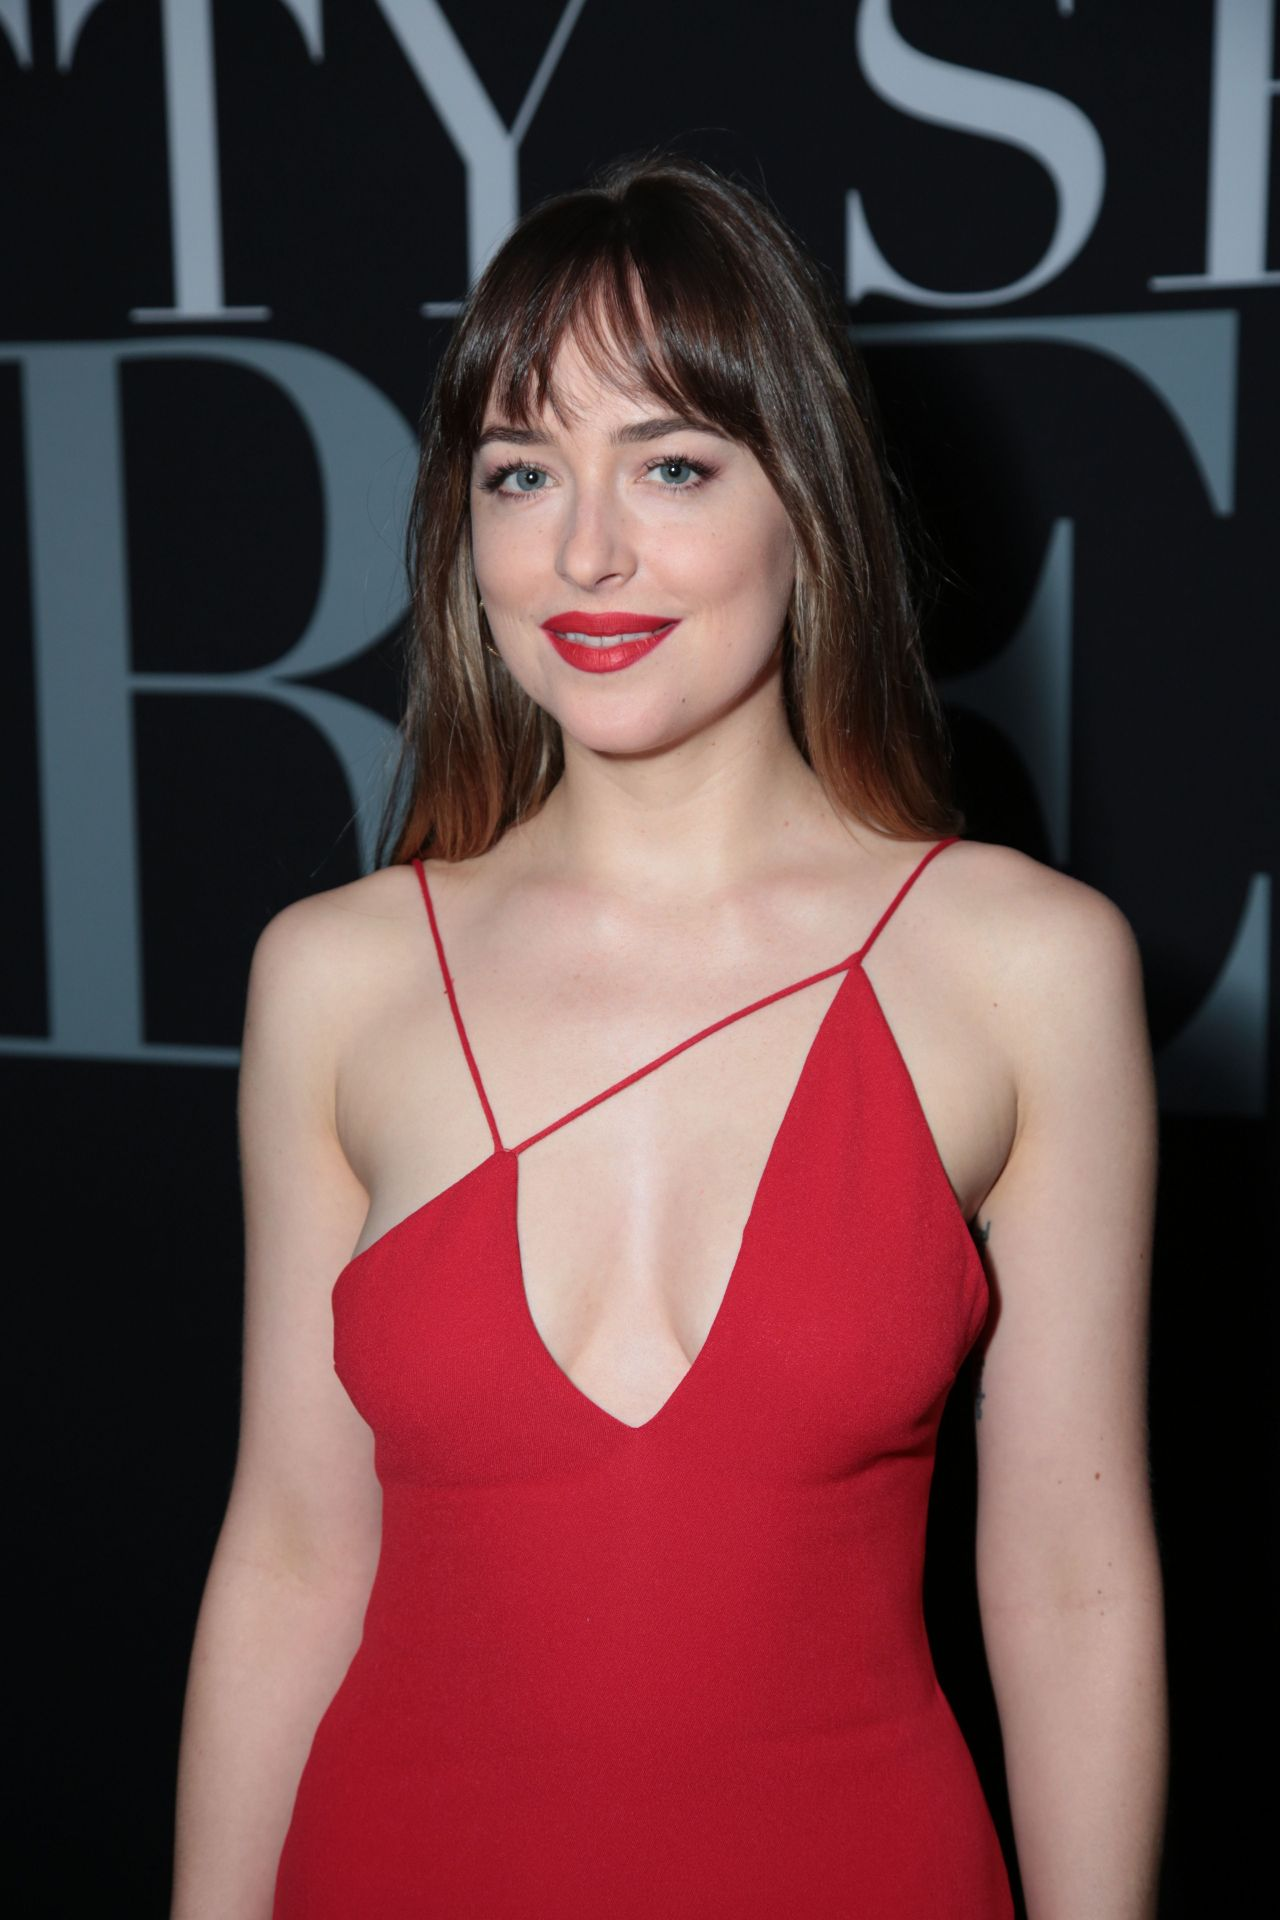 http://celebmafia.com/wp-content/uploads/2018/02/dakota-johnson-fifty-shades-freed-premiere-in-los-angeles-6.jpg